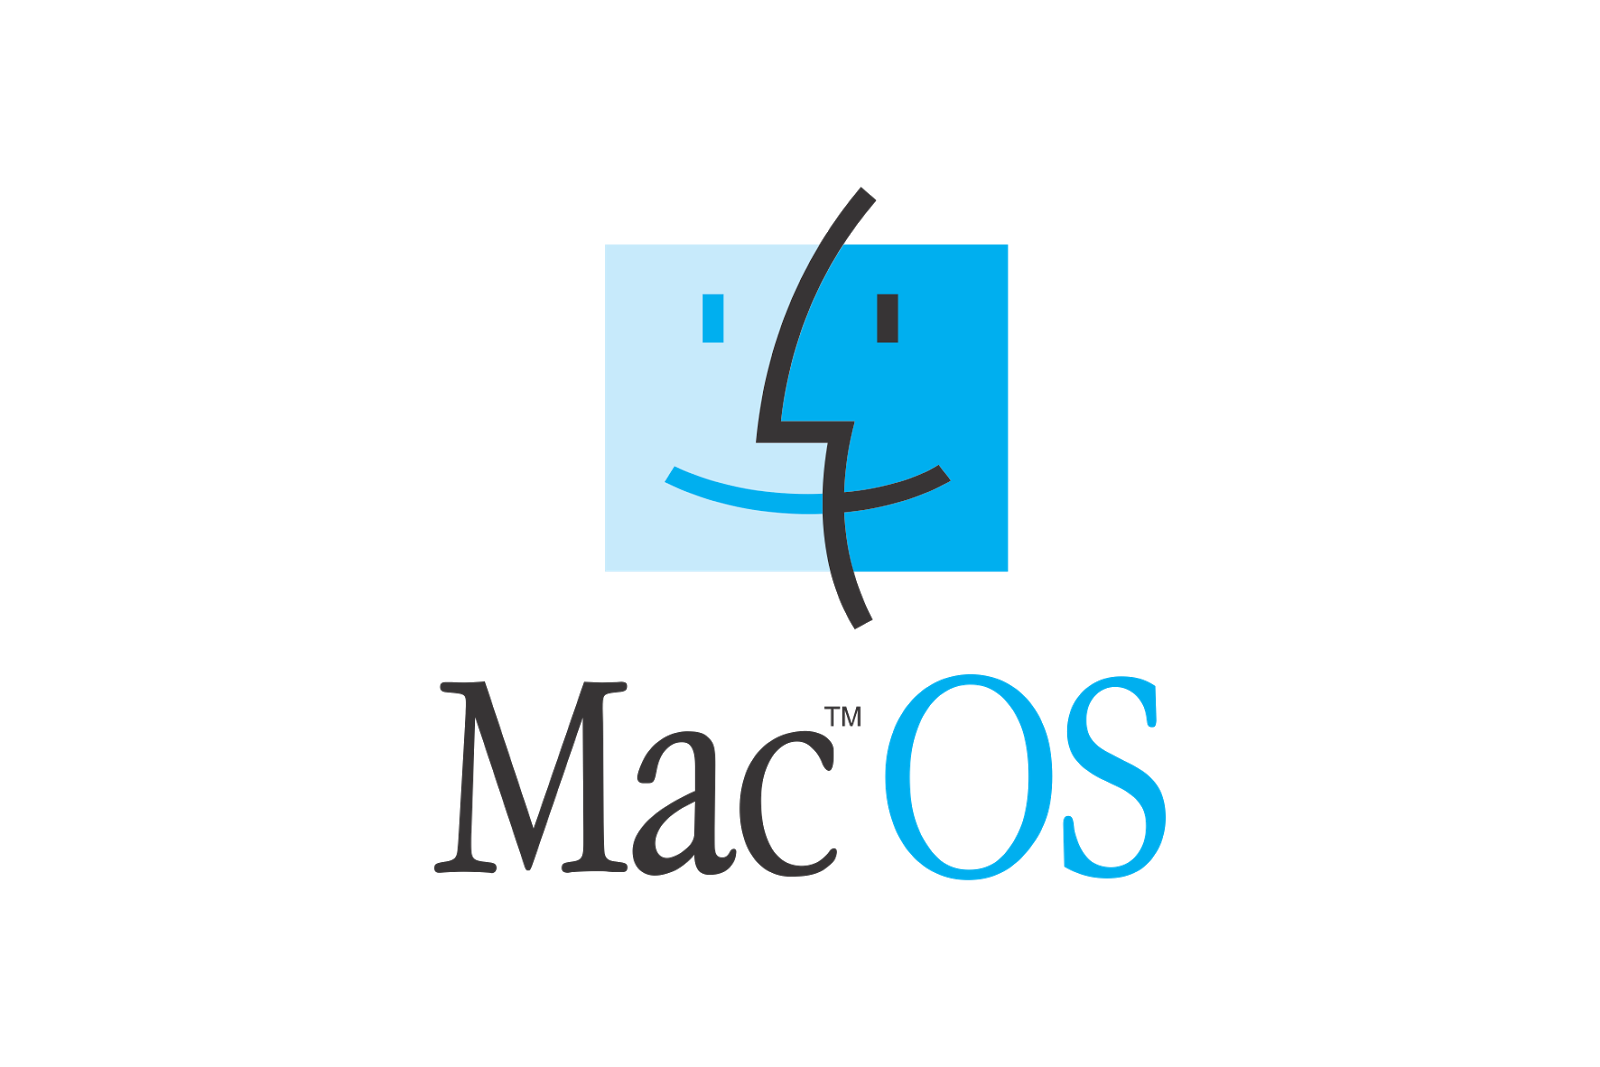 how to download mac os on